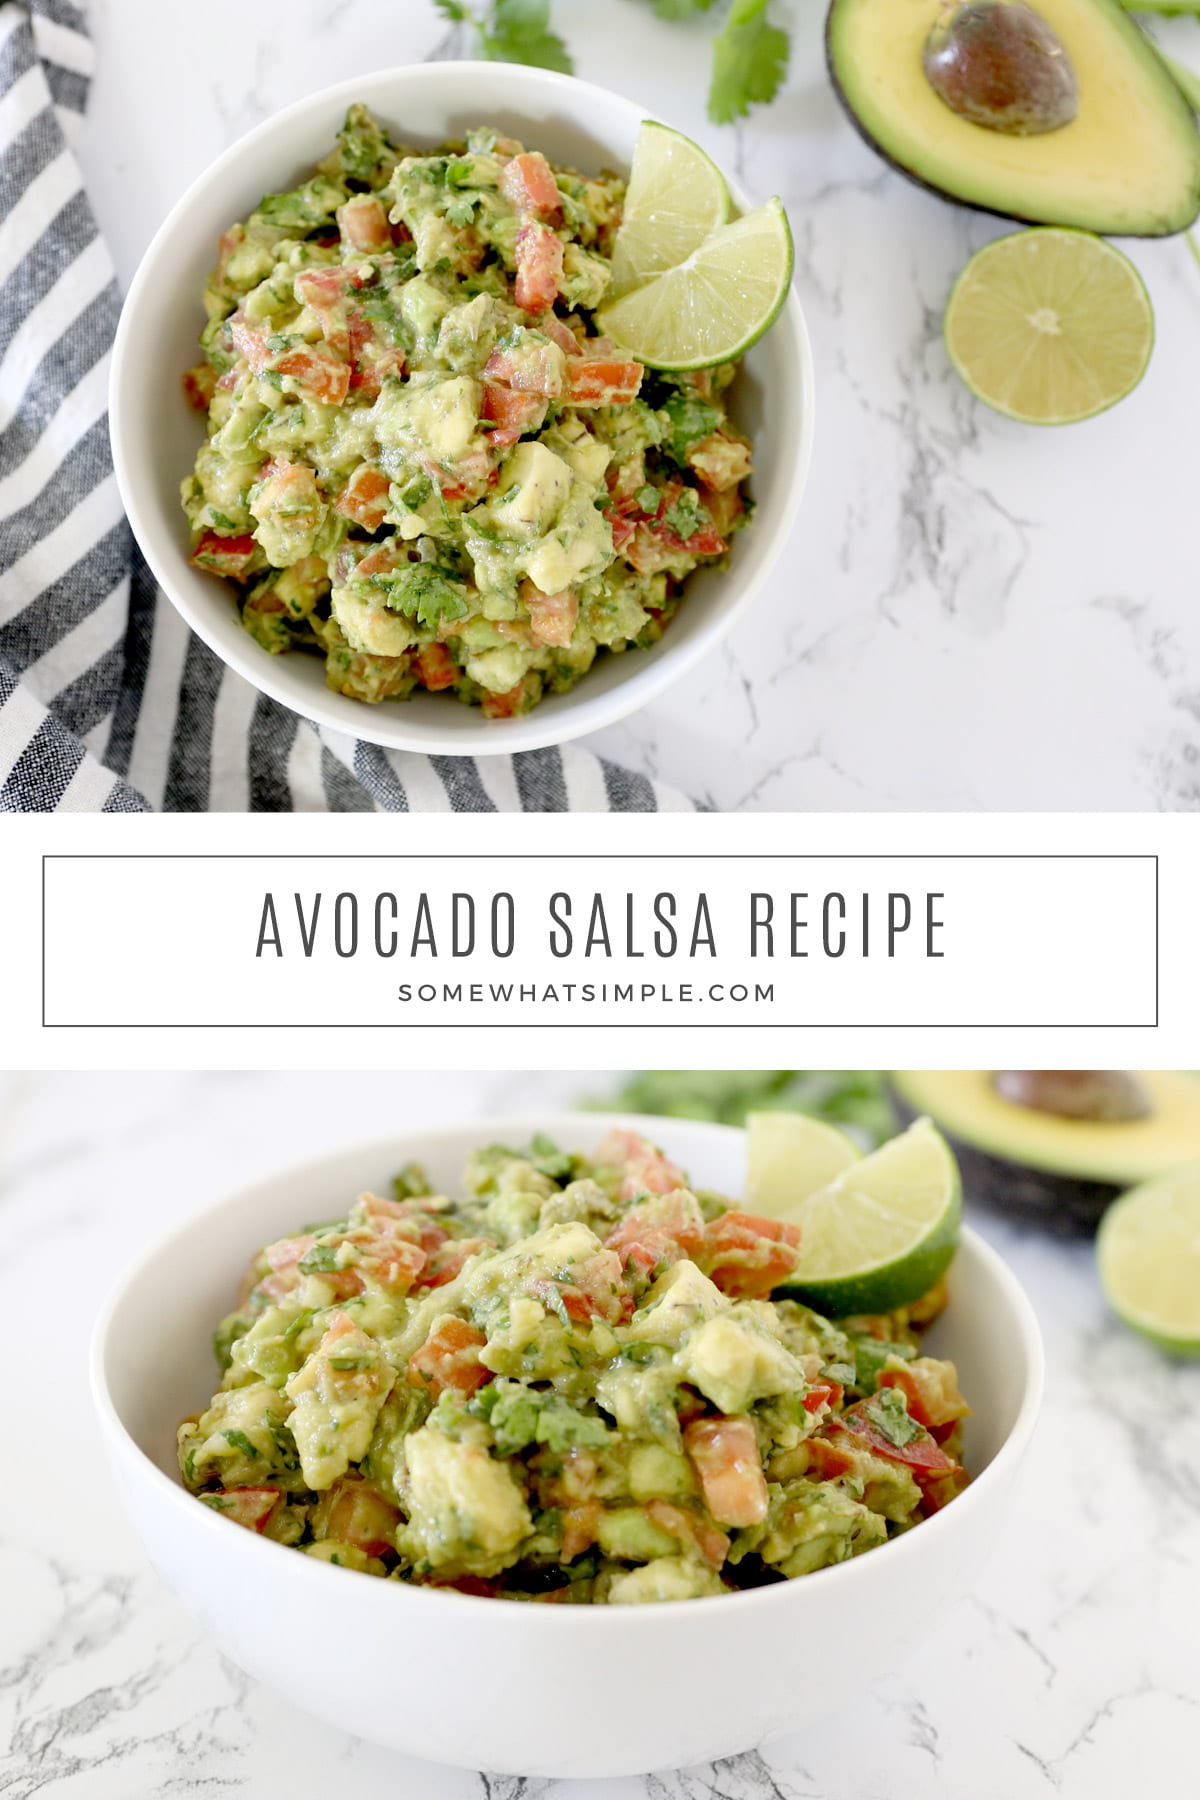 Made with fresh avocados, tomatoes, onions, and cilantro, this Avocado Salsa recipe tastes amazing and could not be any easier to make! via @somewhatsimple